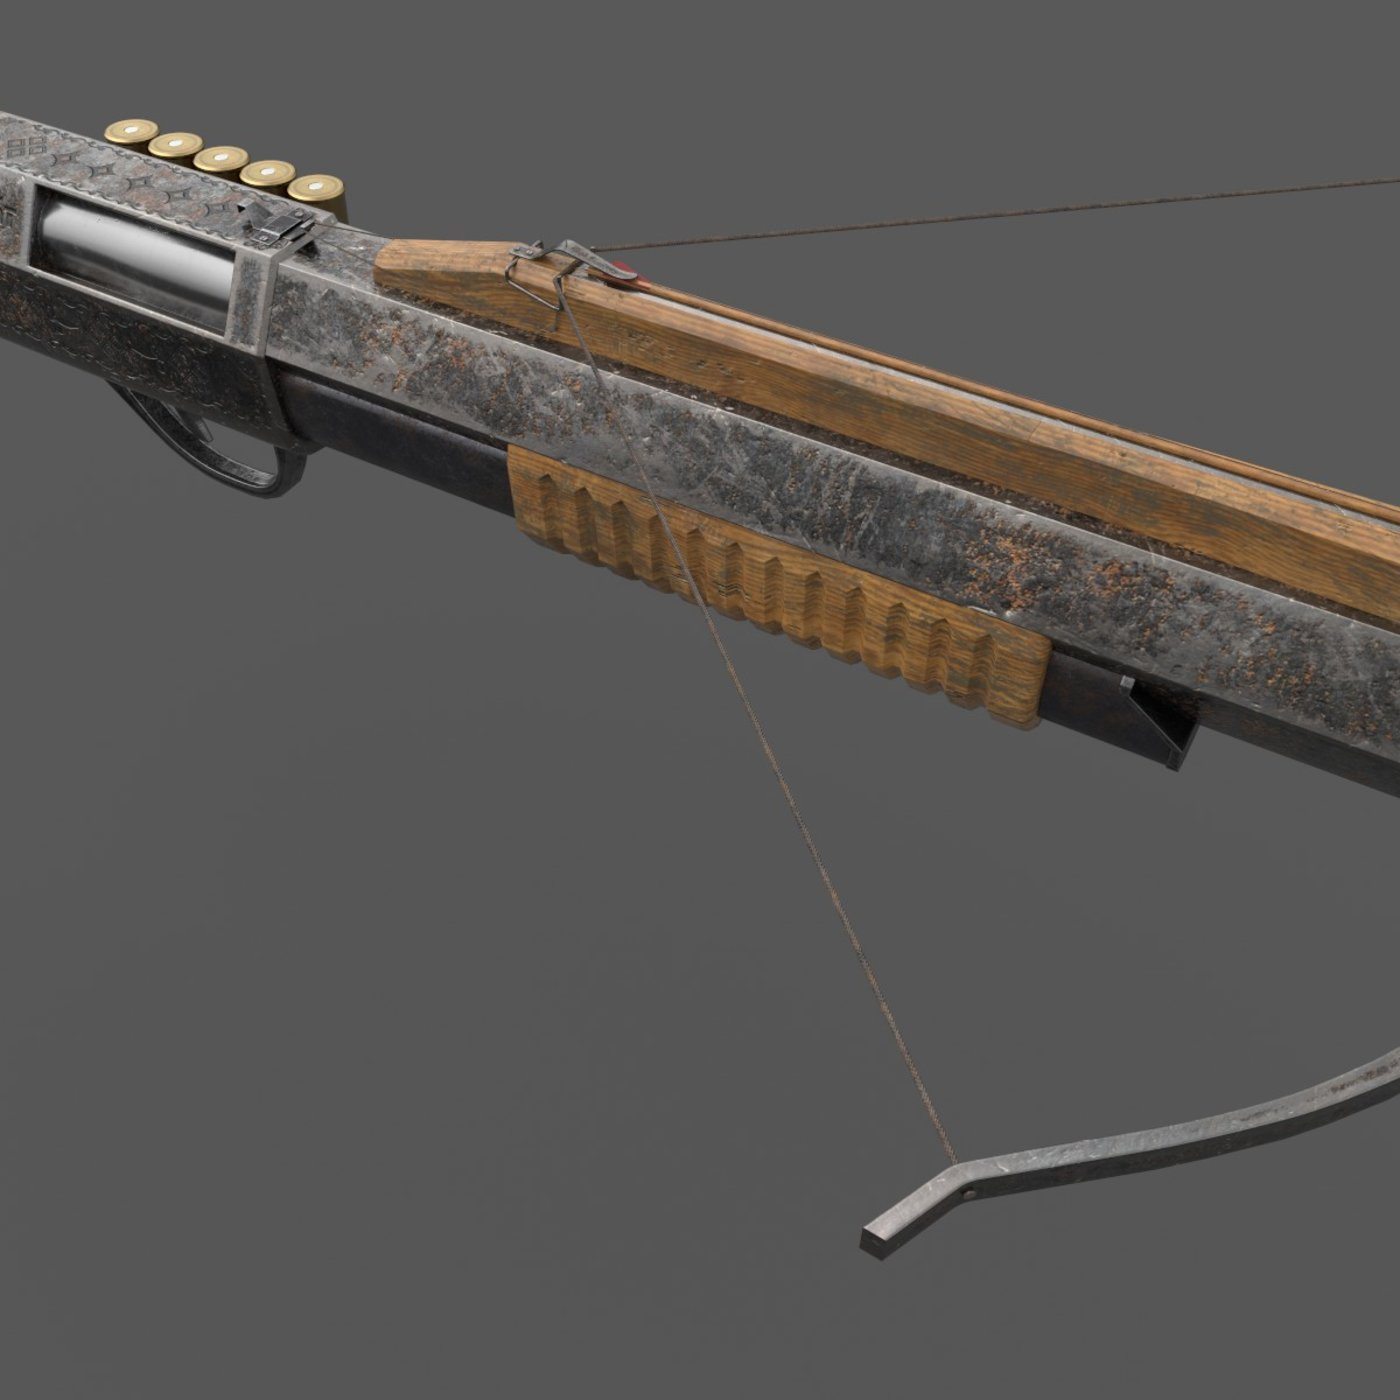 Rifle and Crossbow